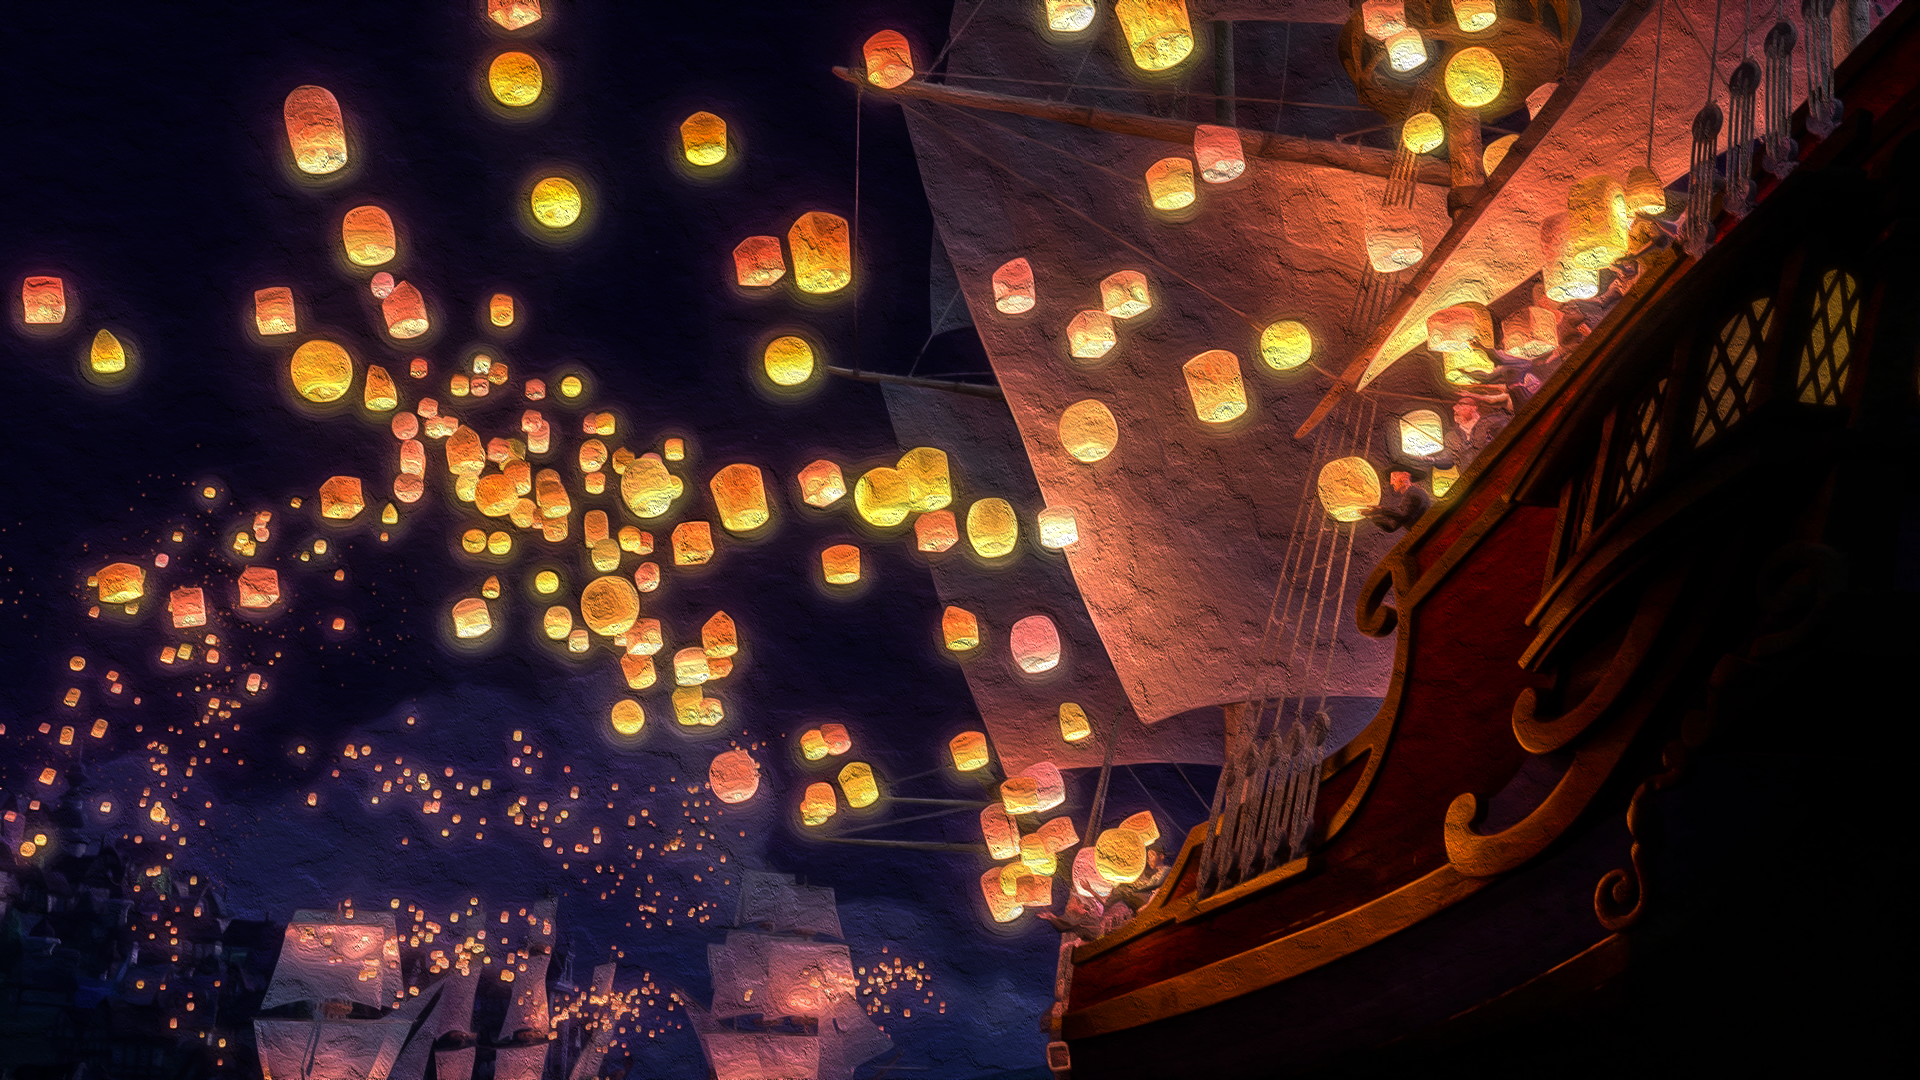 Wallpaperswide Tangled Wallpapers Wallpaper 1920x1080